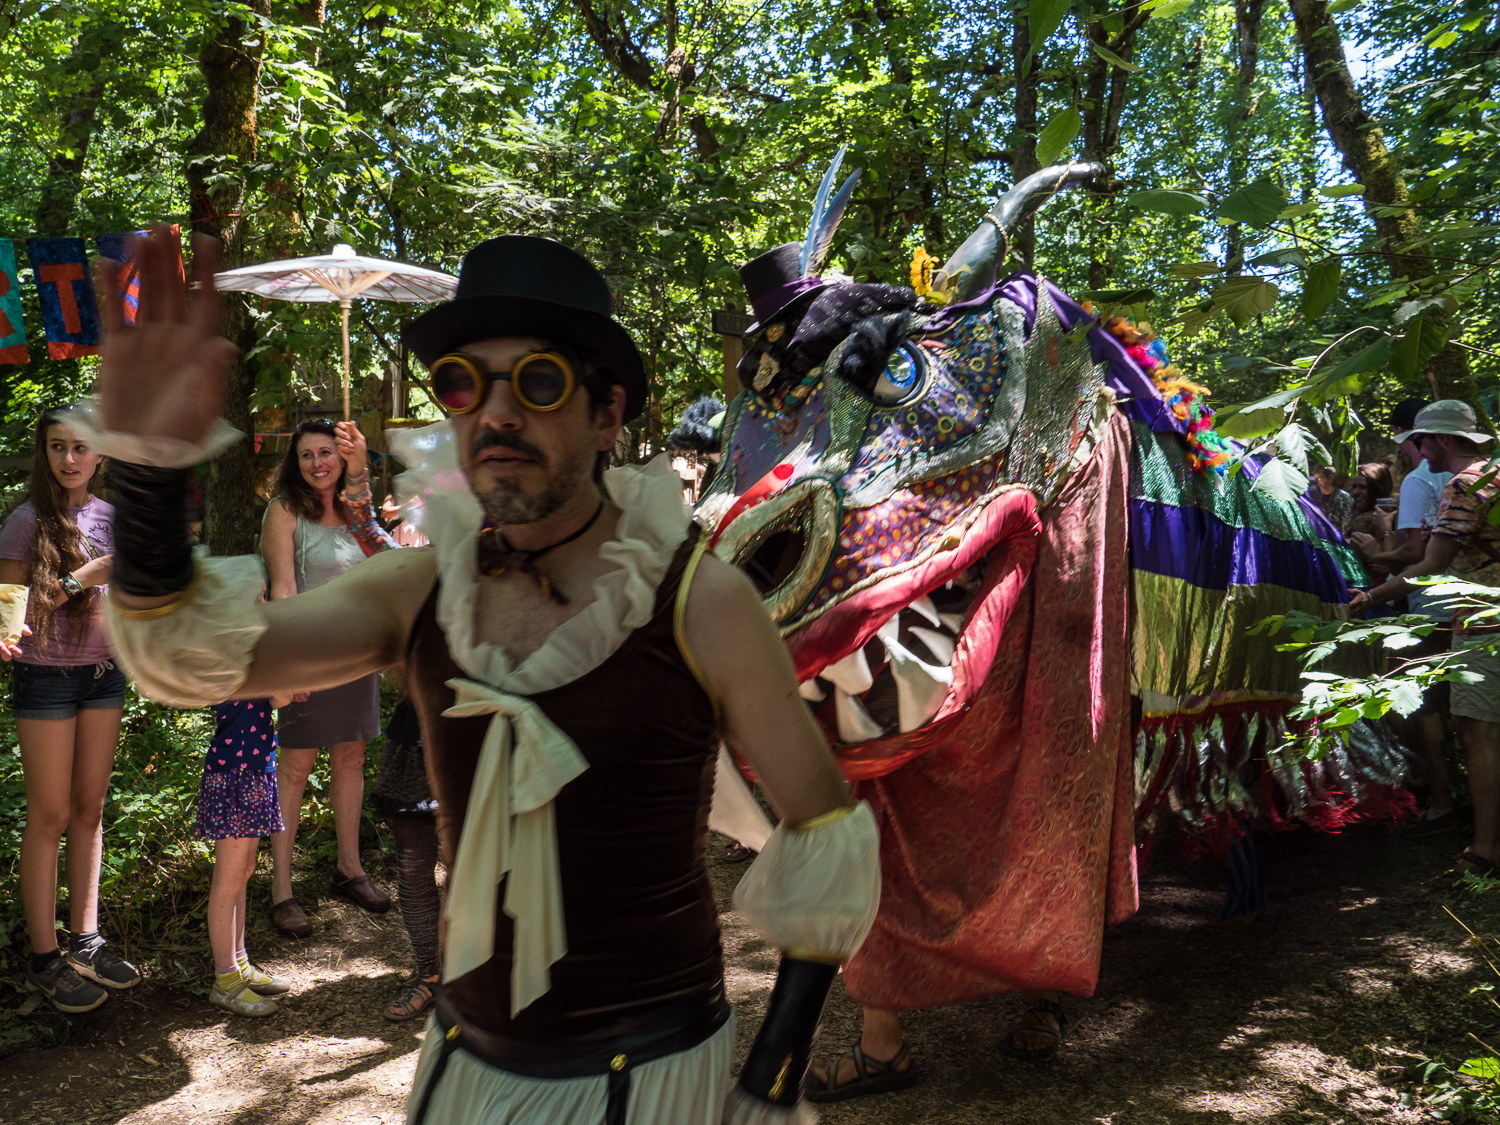 Parade with Dragon in Forest-7080425.jpg